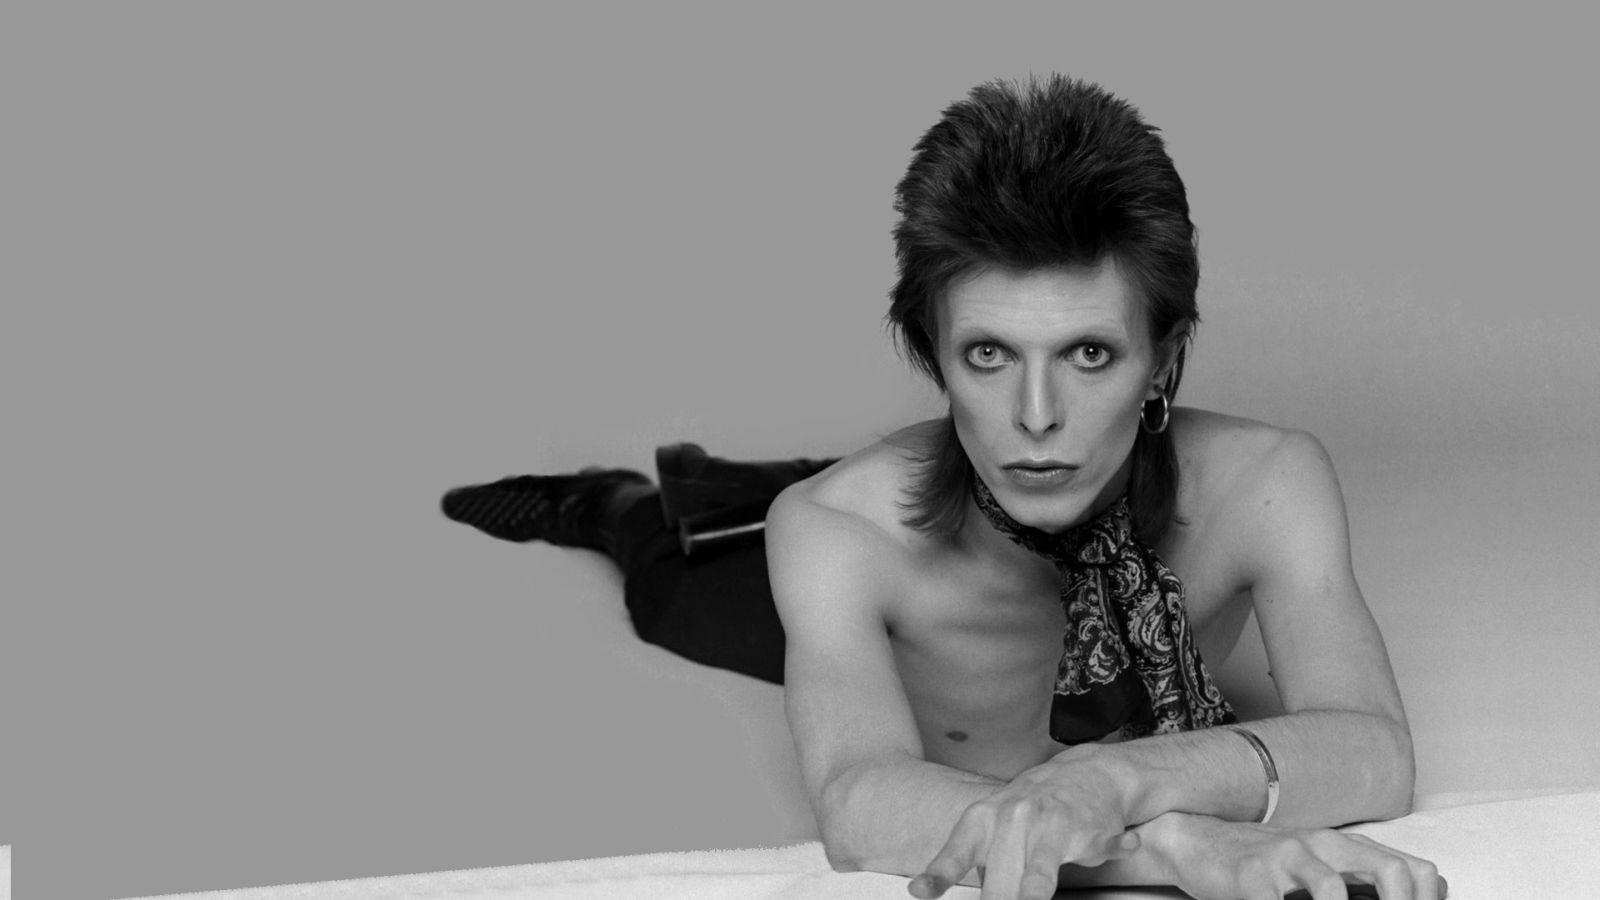 david_bowie_wallpaper_5-1920x1080 - Copia